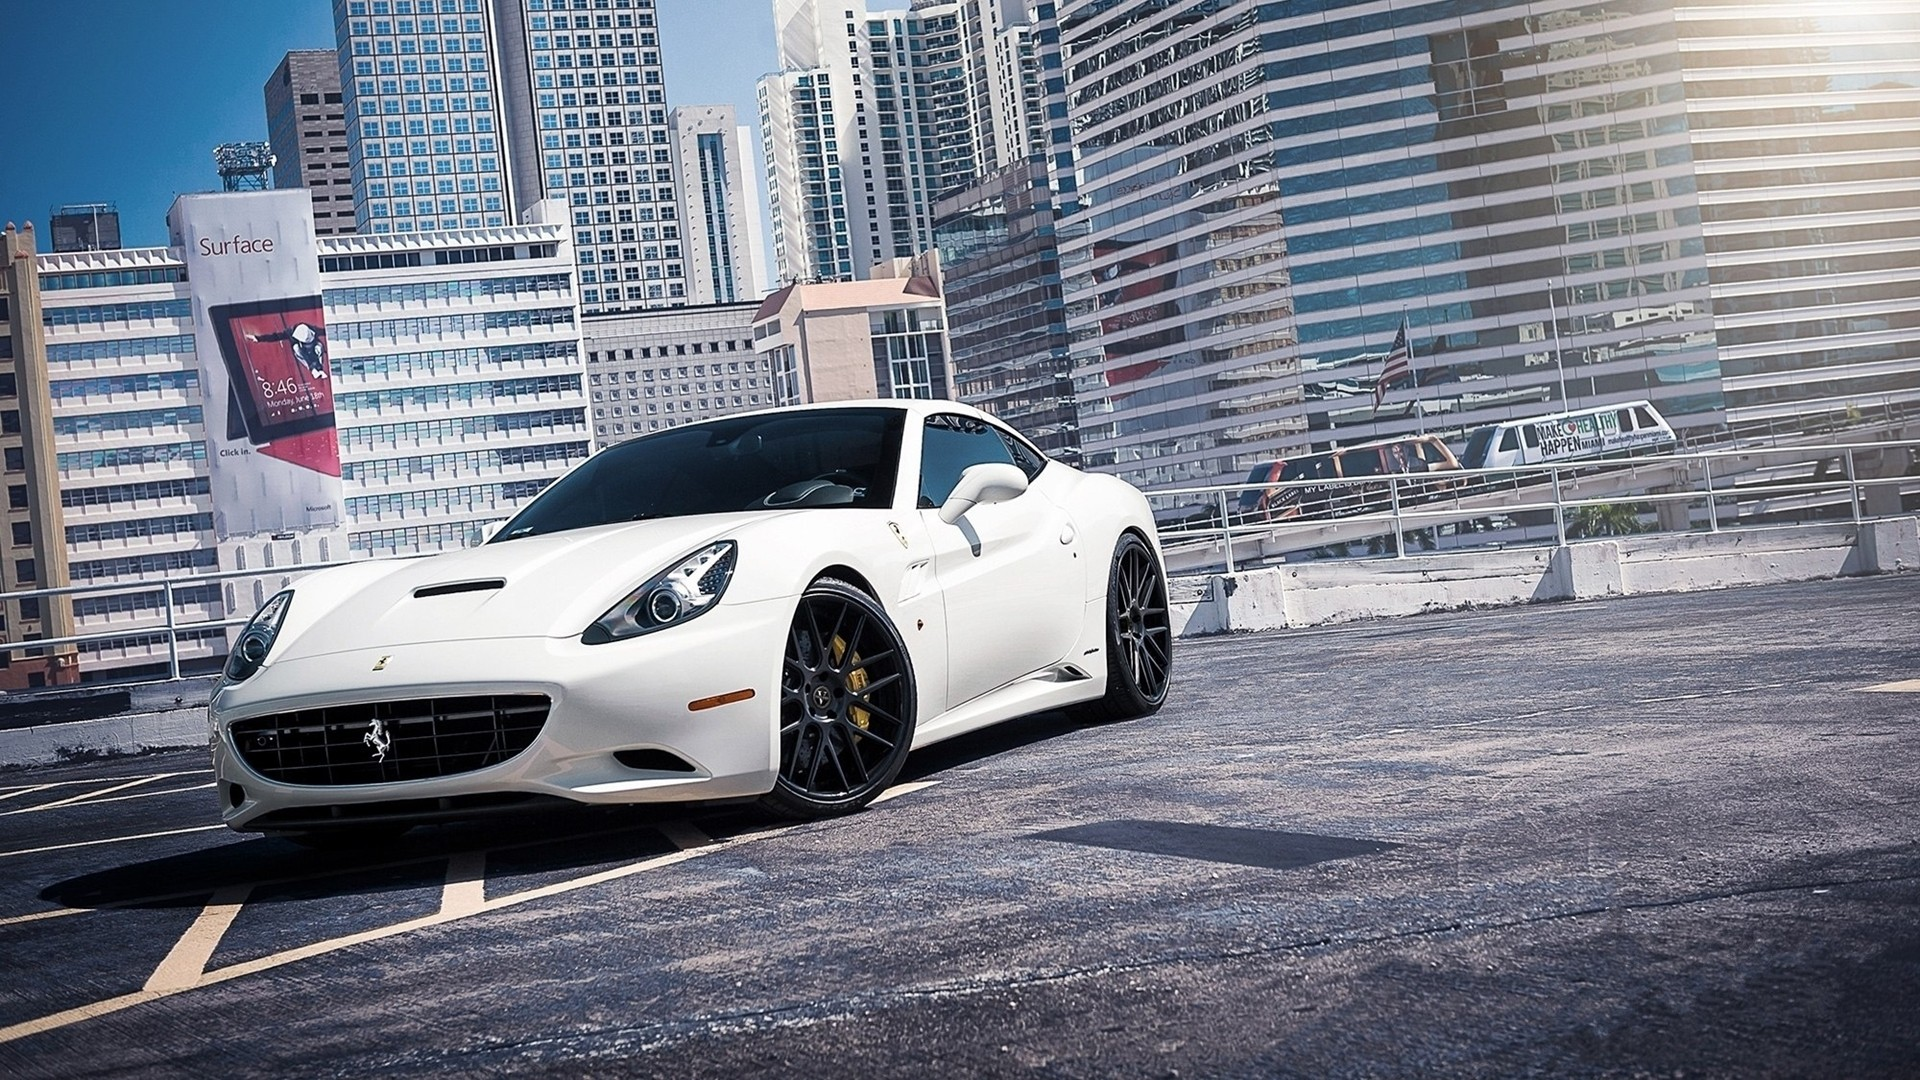 FERRARI CALIFORNIA WHITE WALLPAPER image gallery